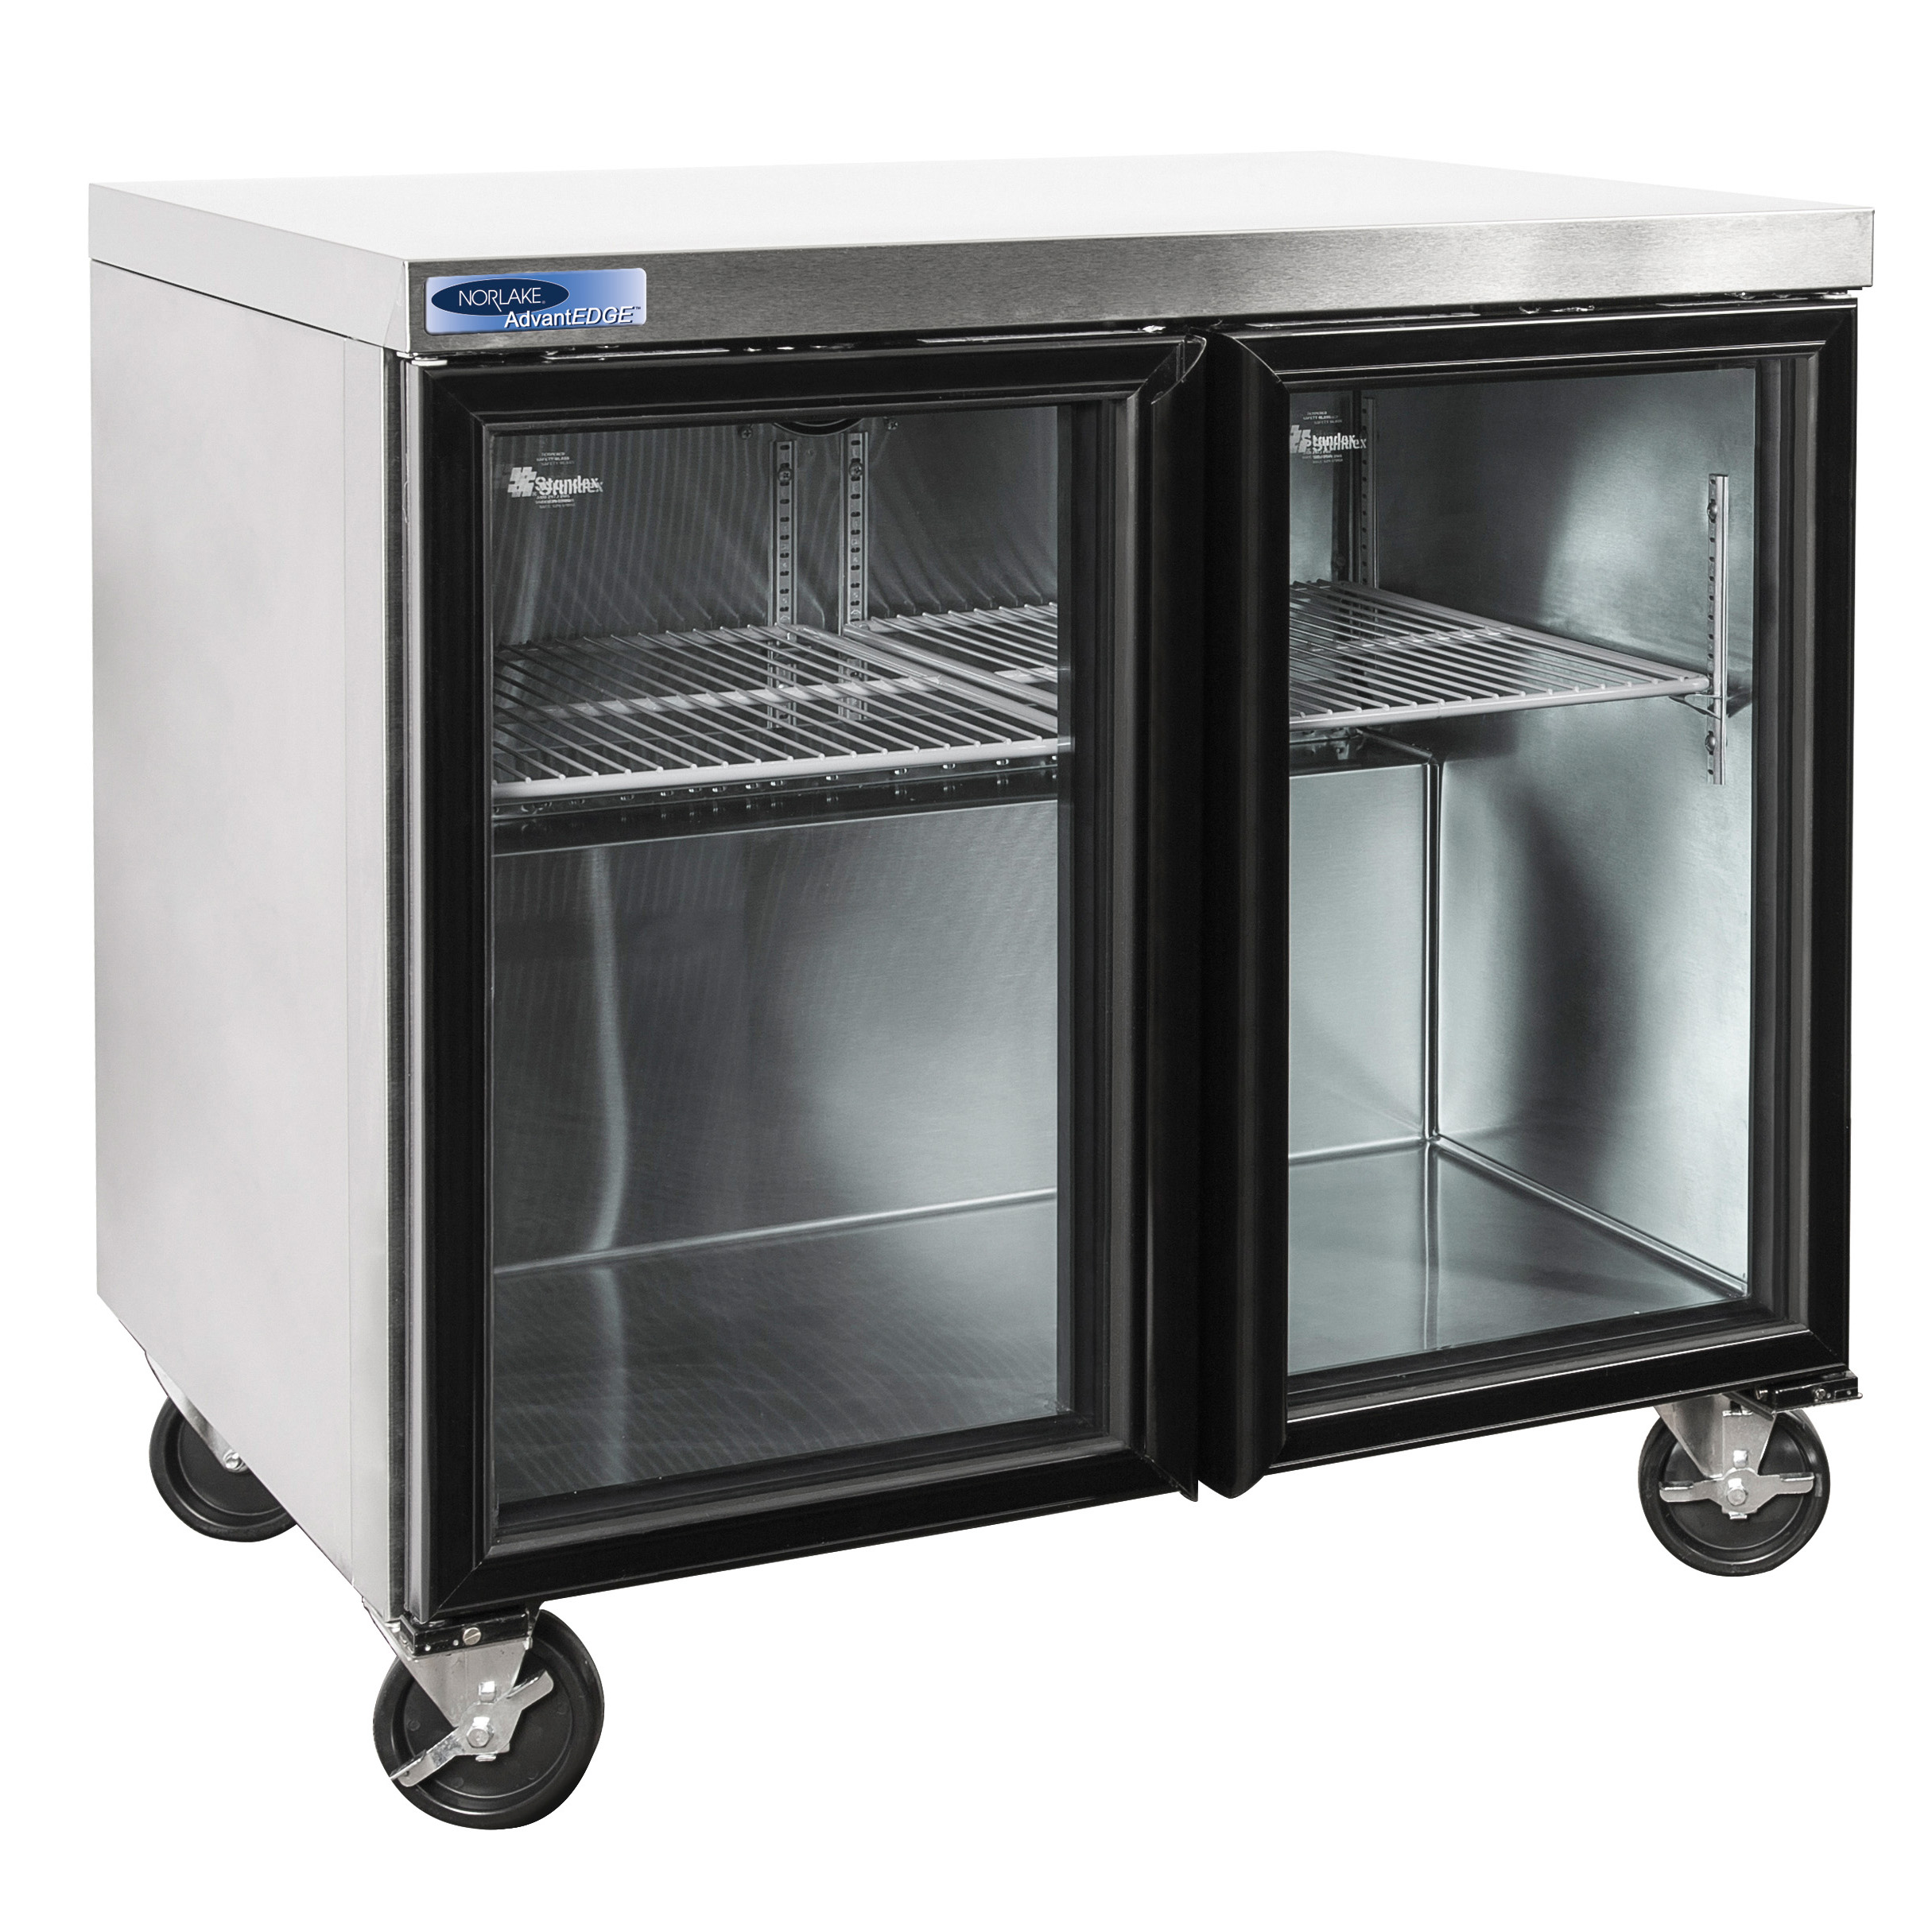 Nor-Lake NLURG36A-014 refrigerator, undercounter, reach-in